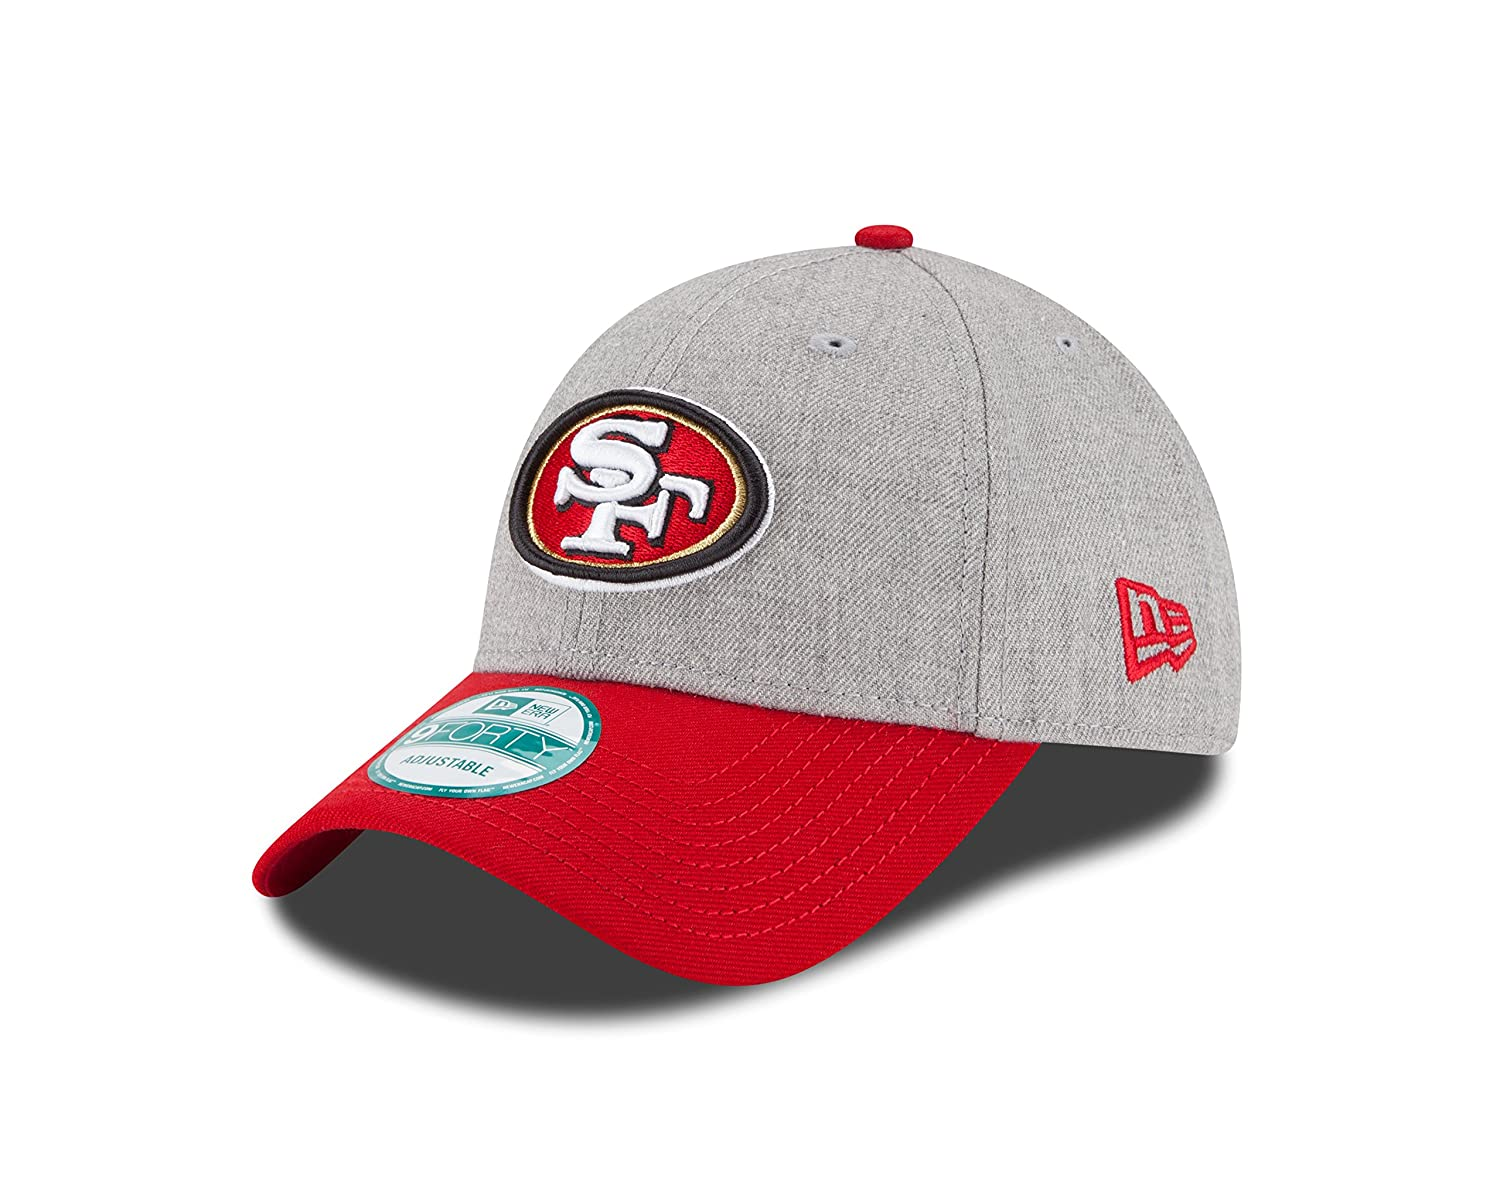 Gorra Ajustable NFL The League Heather 9forty, Unisex, Heather ...